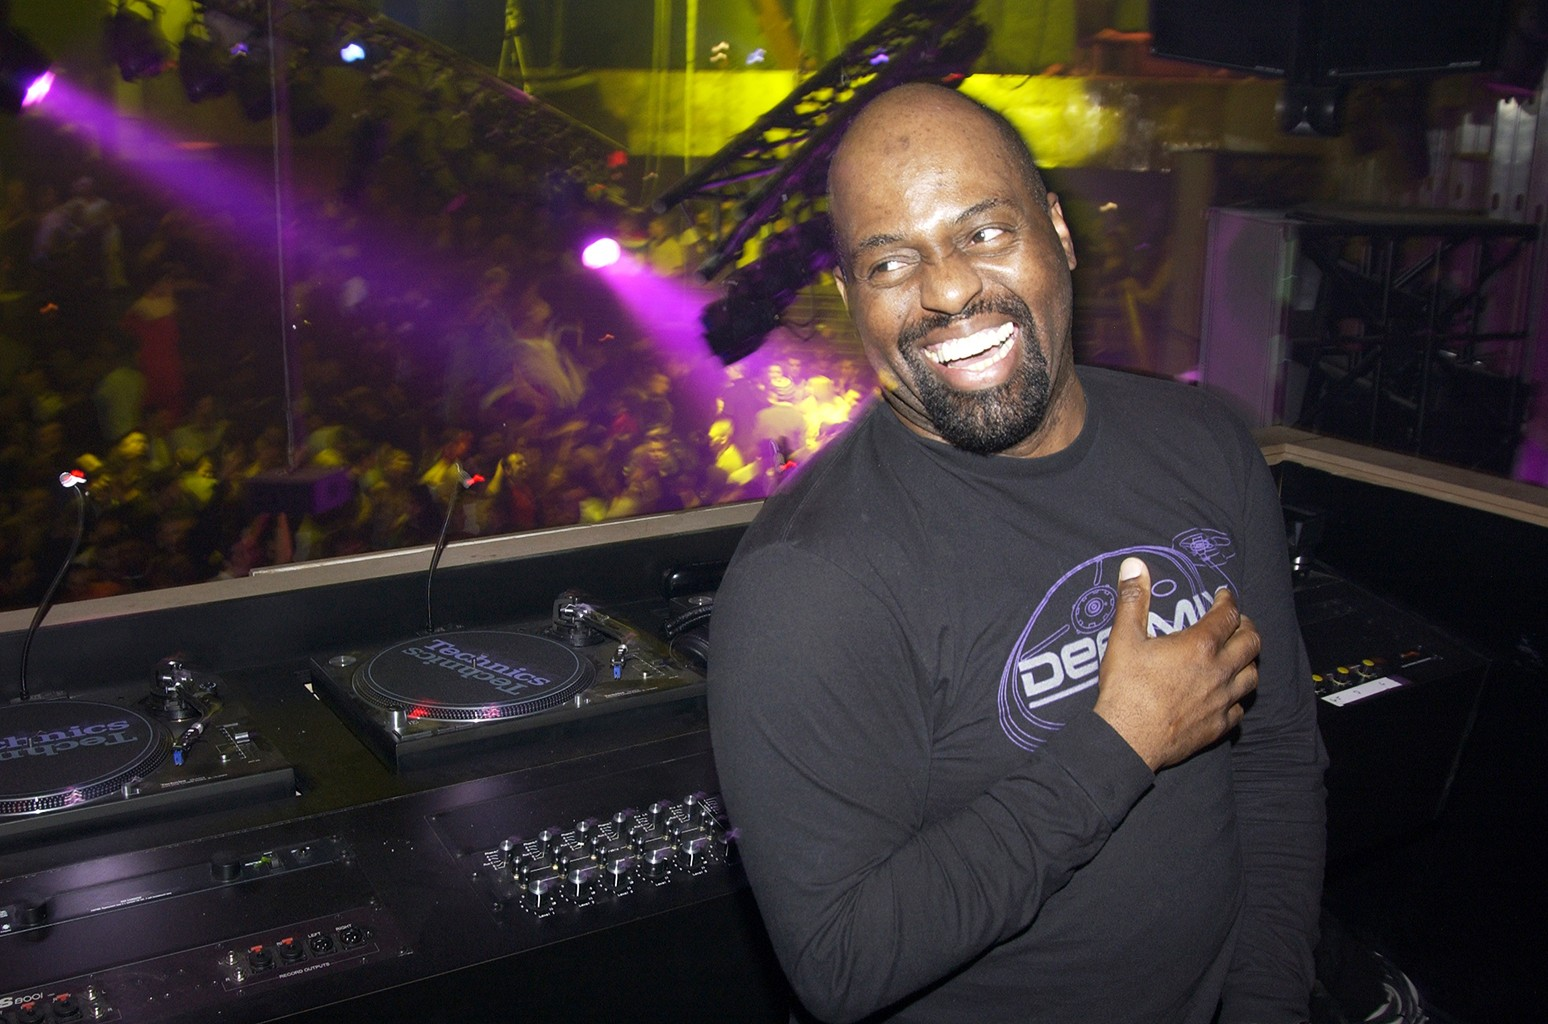 Frankie Knuckles in the DJ booth during the opening night party at the Crobar in New York City.